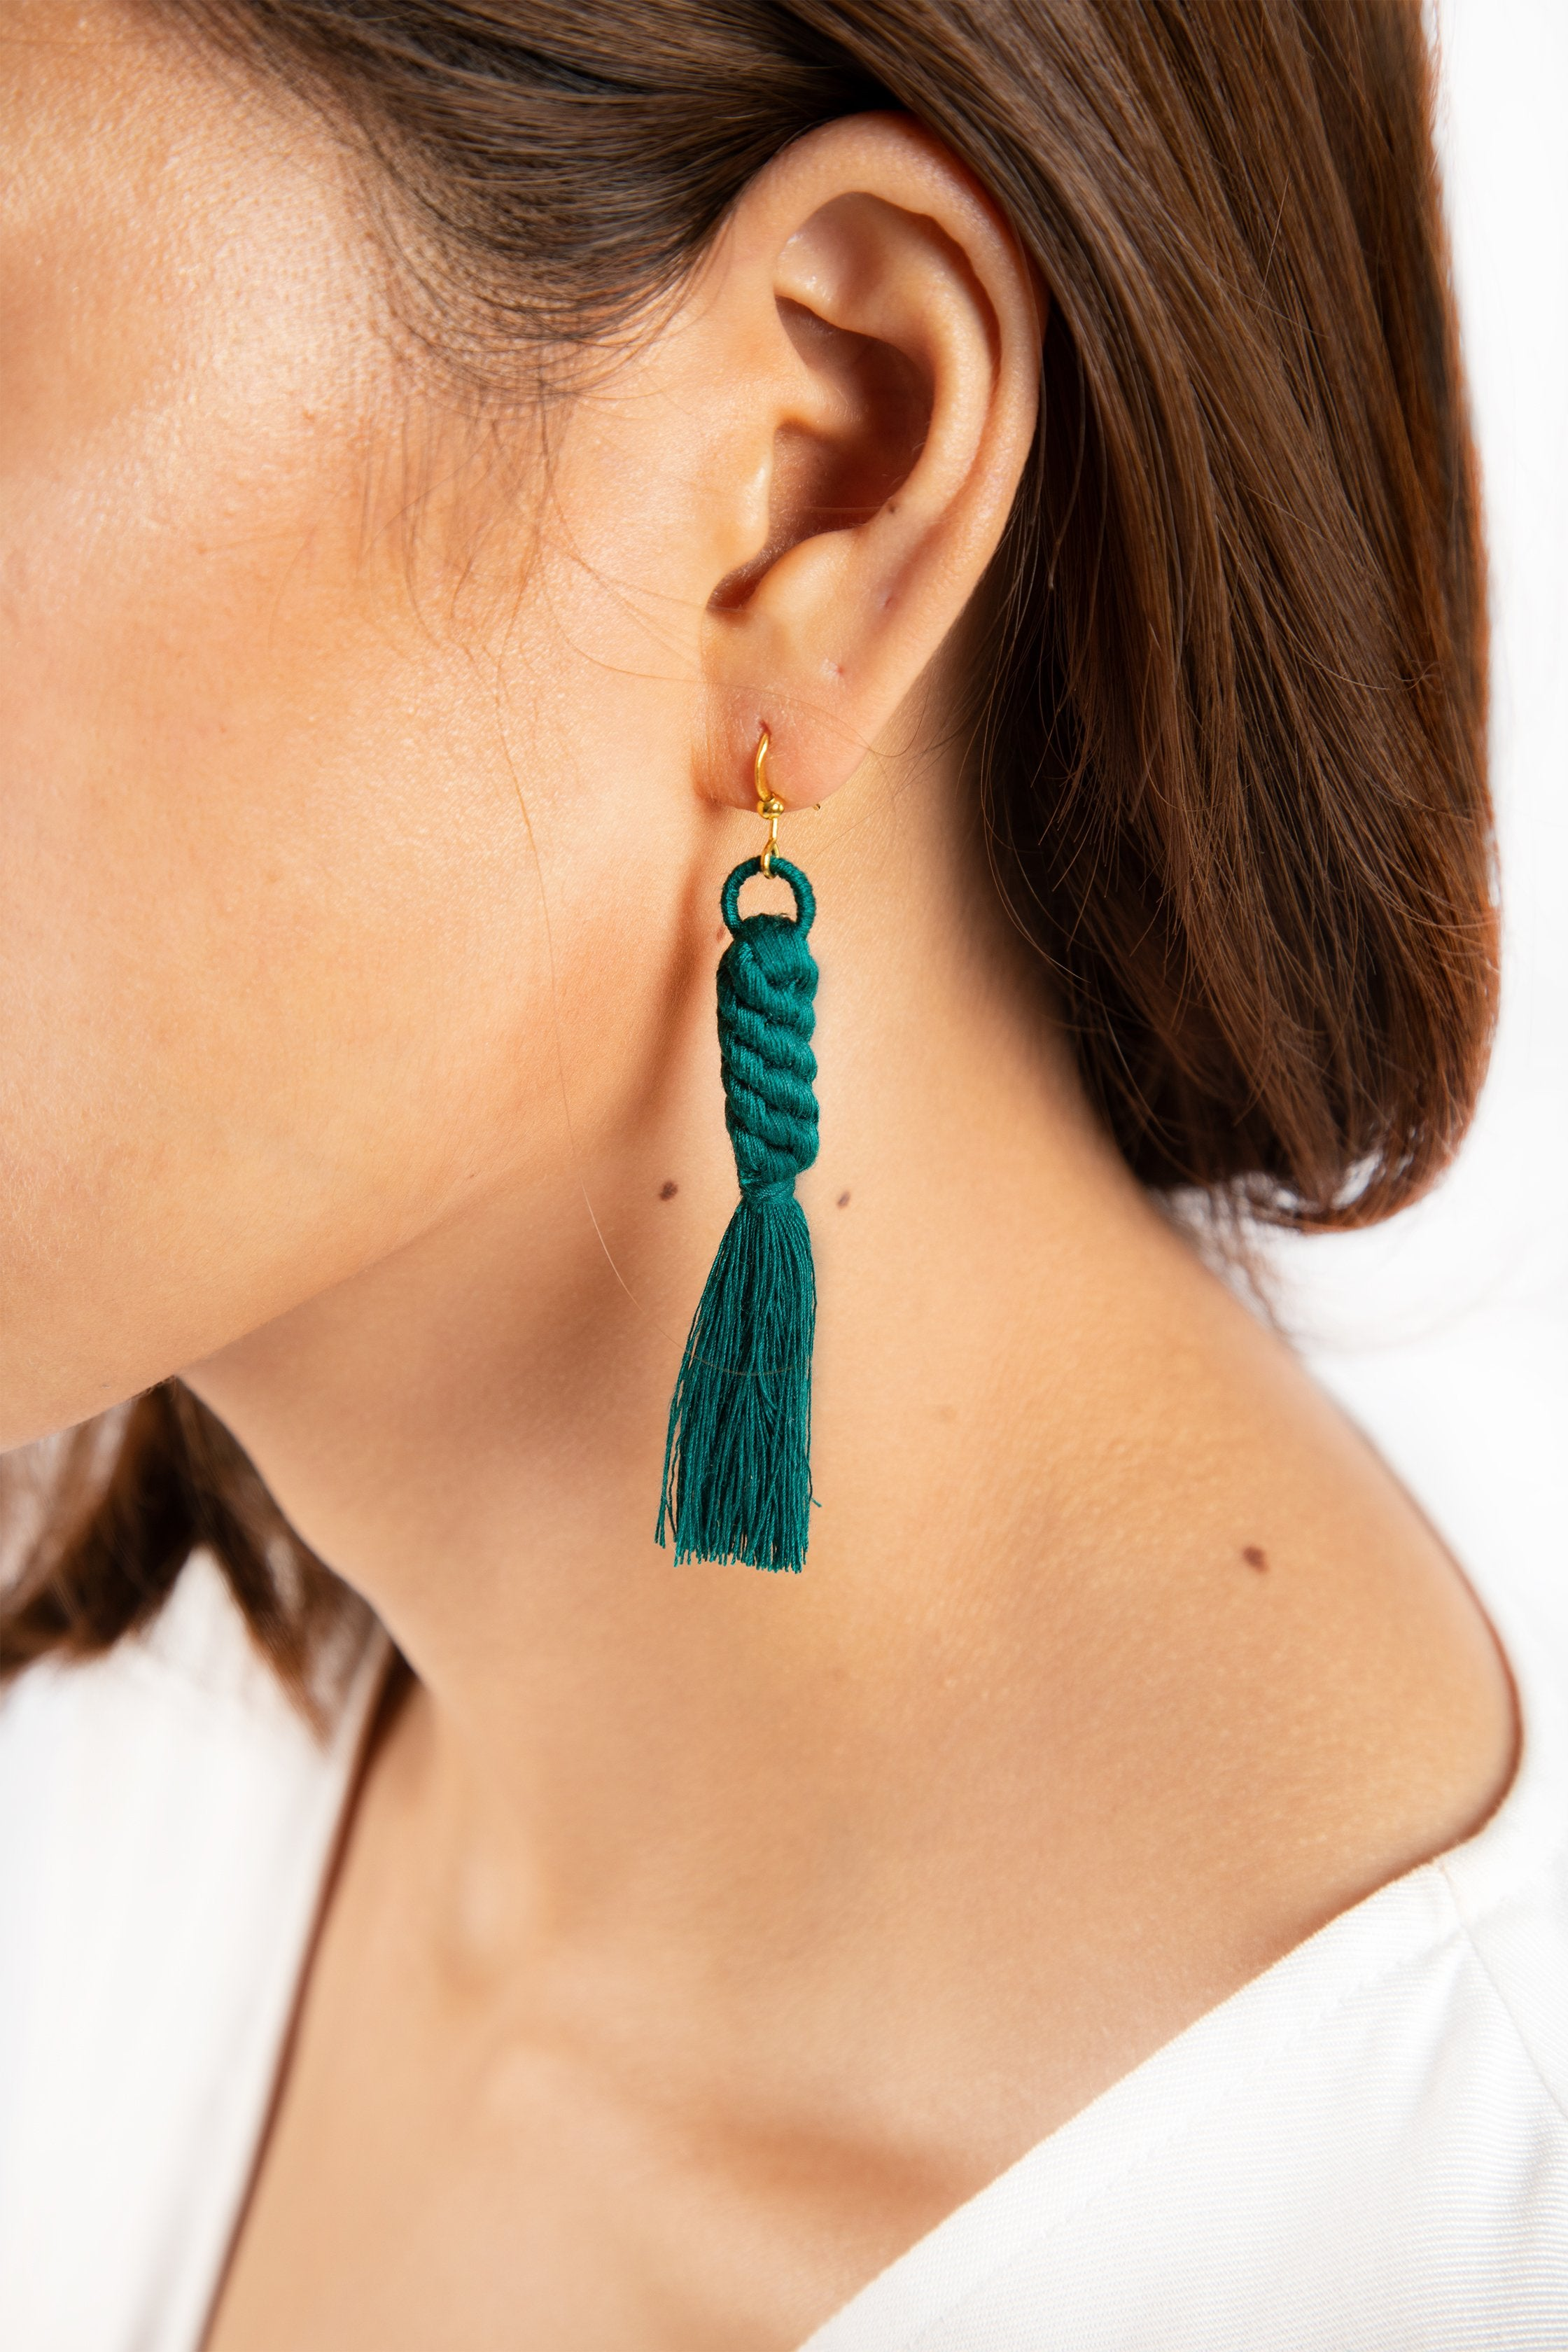 Shan Braid Earrings - Peacock - Our Barehands